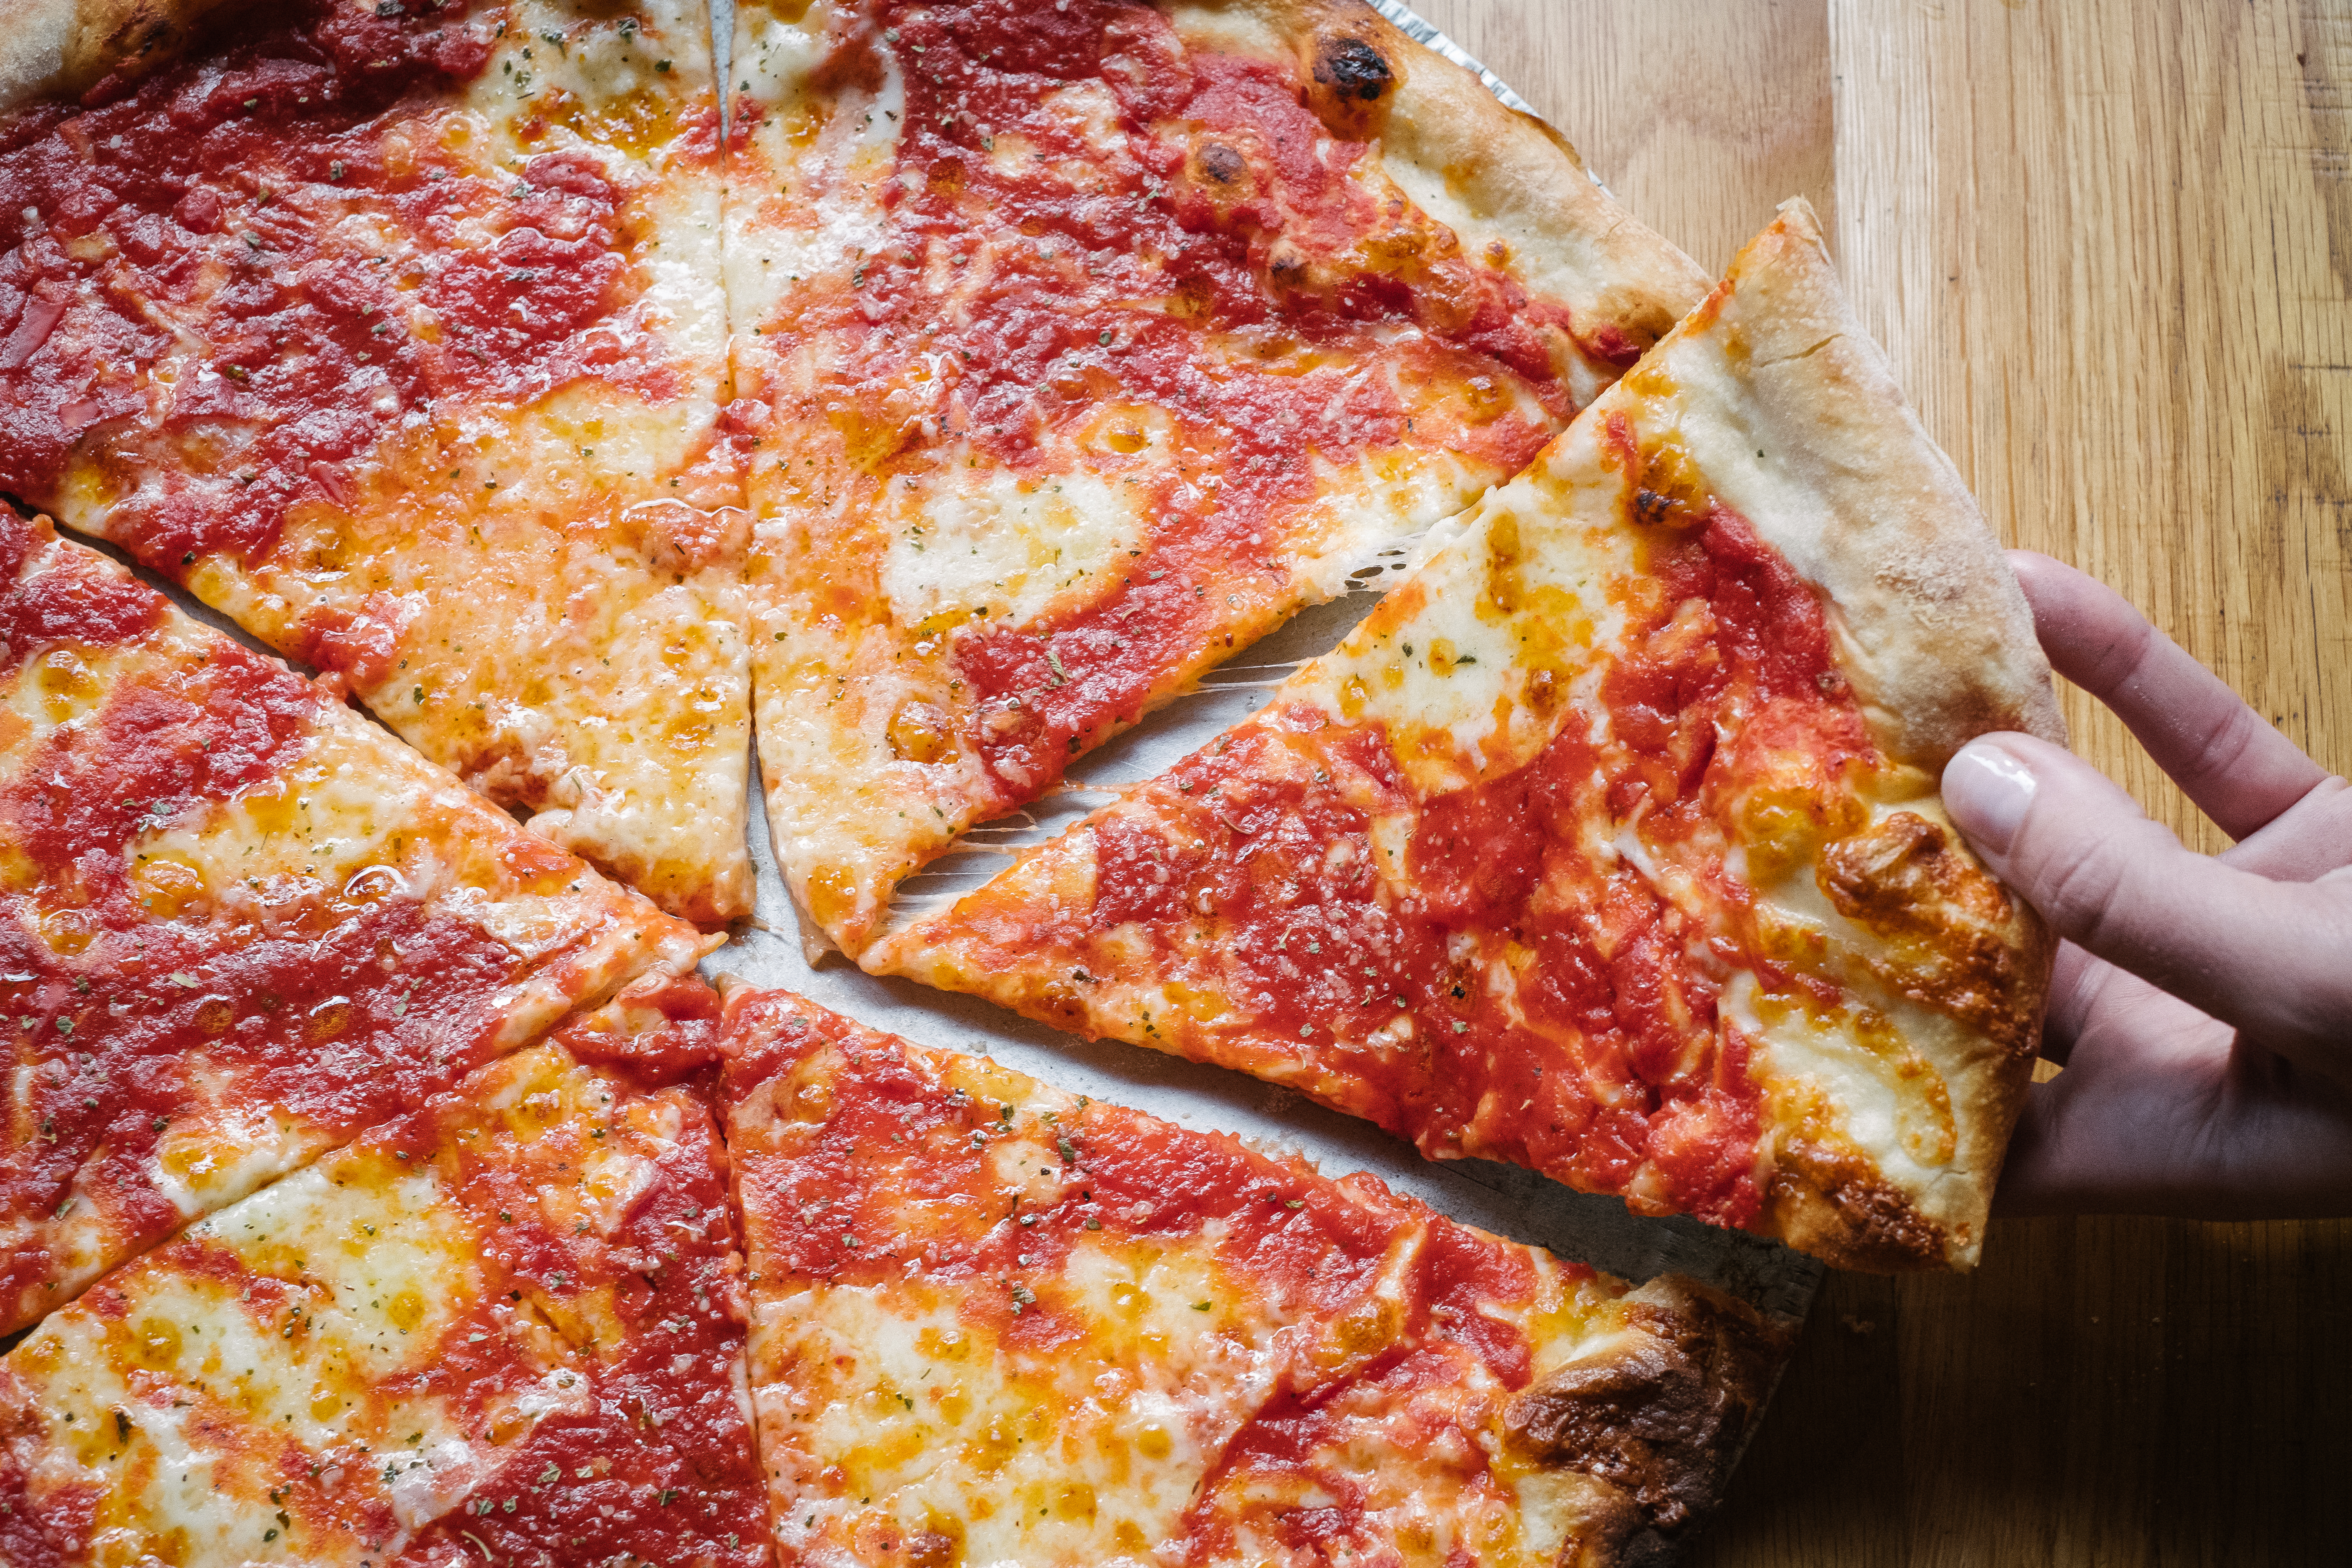 The San Francisco Pizza Delivery Guide - San Francisco - The